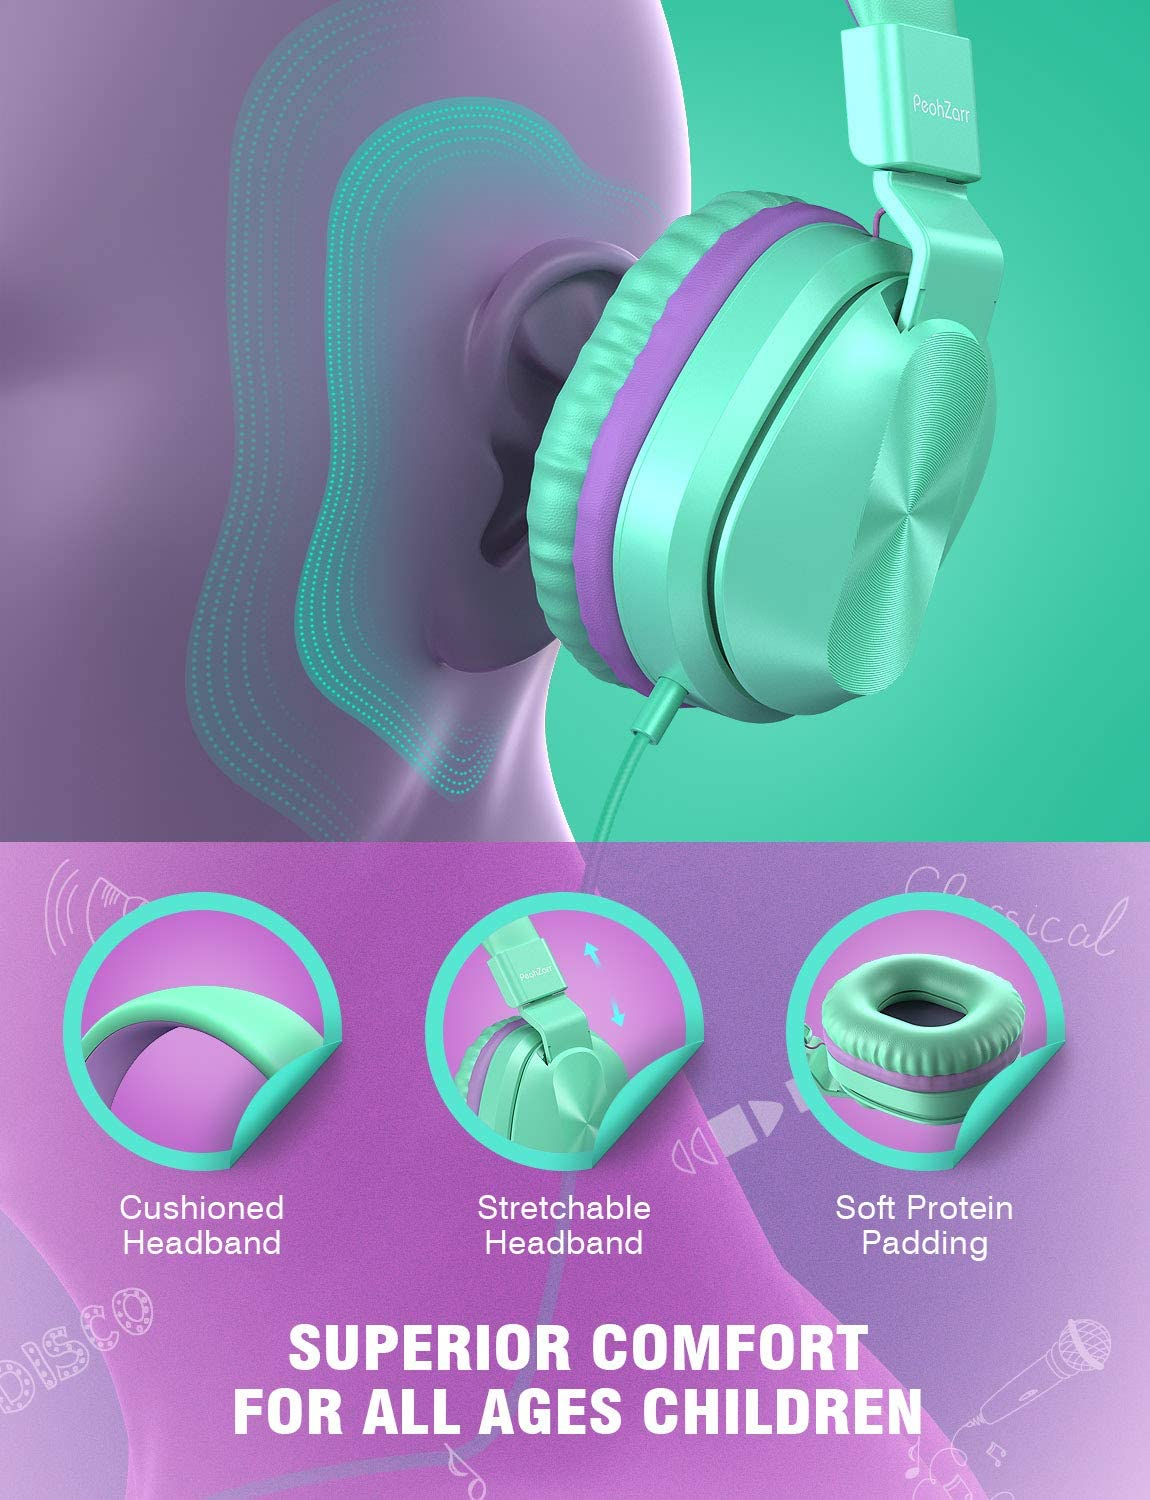 PeohZarr Kids Headphones With Microphone, 85/94dB Safe Volume Limited On-Ear Headphones For Kids Girls Boys, Foldable 3.5mm Jack Stereo Wired Headphones For Cellphones/Tablet/Kindle/School/Travel